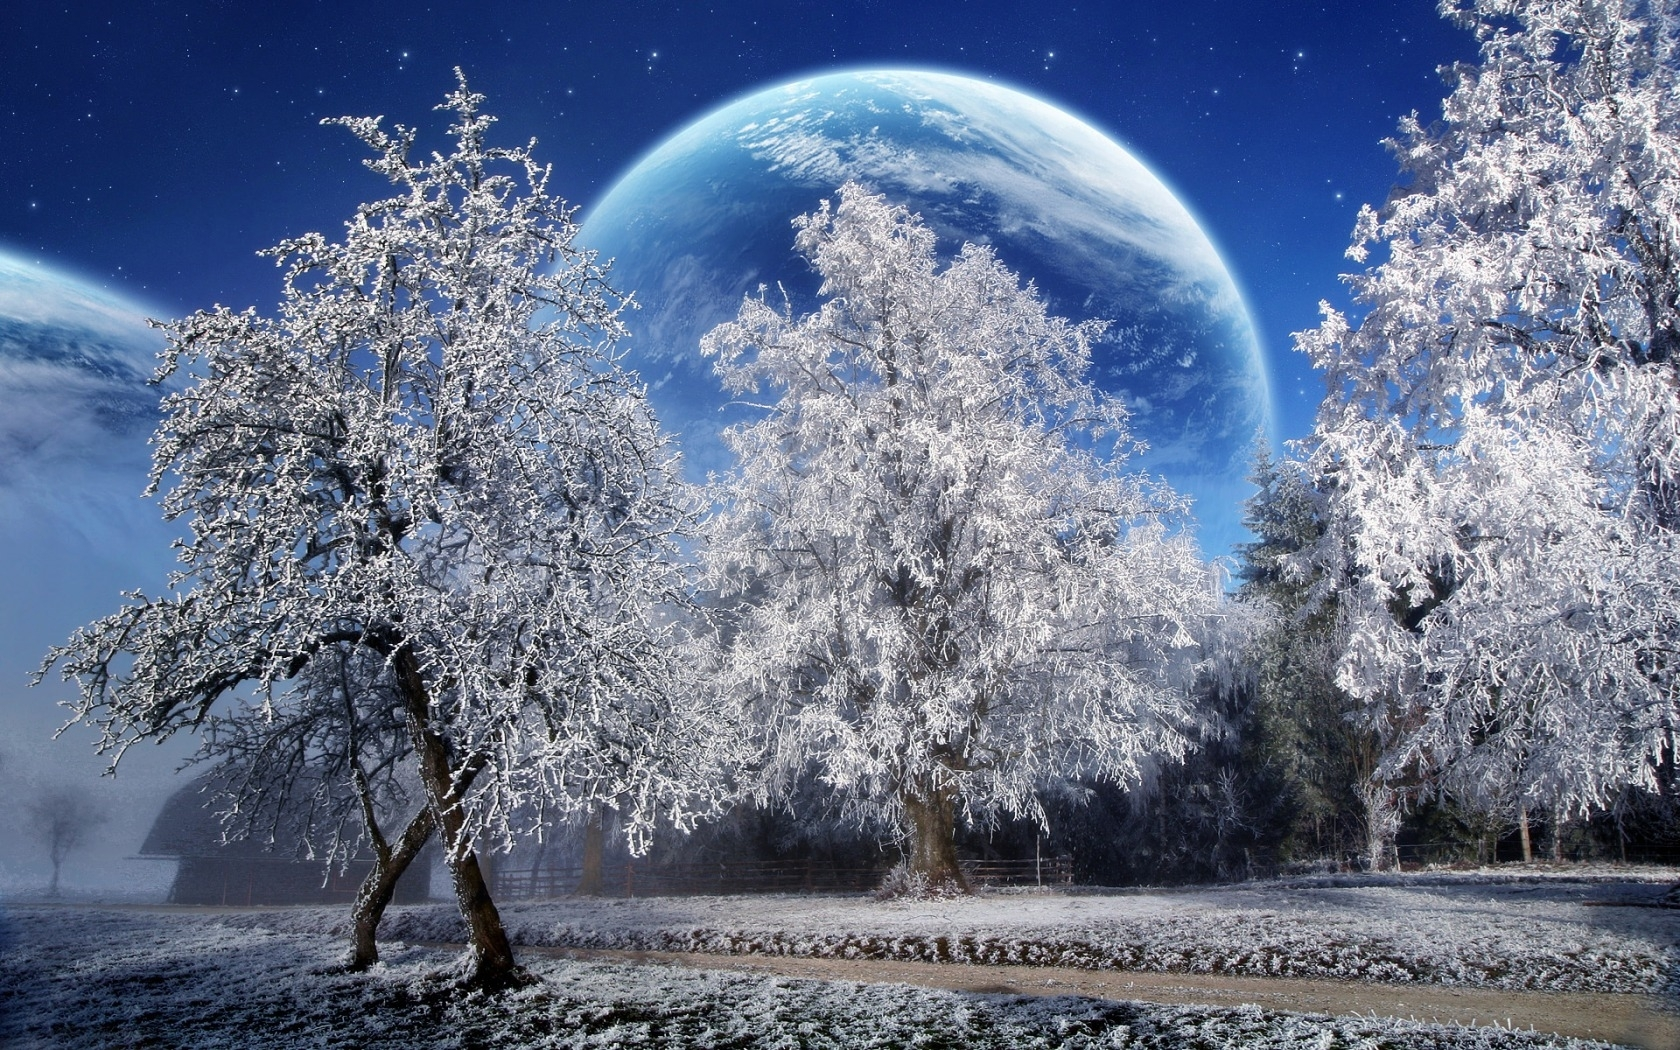 44505 download wallpaper Landscape, Winter screensavers and pictures for free